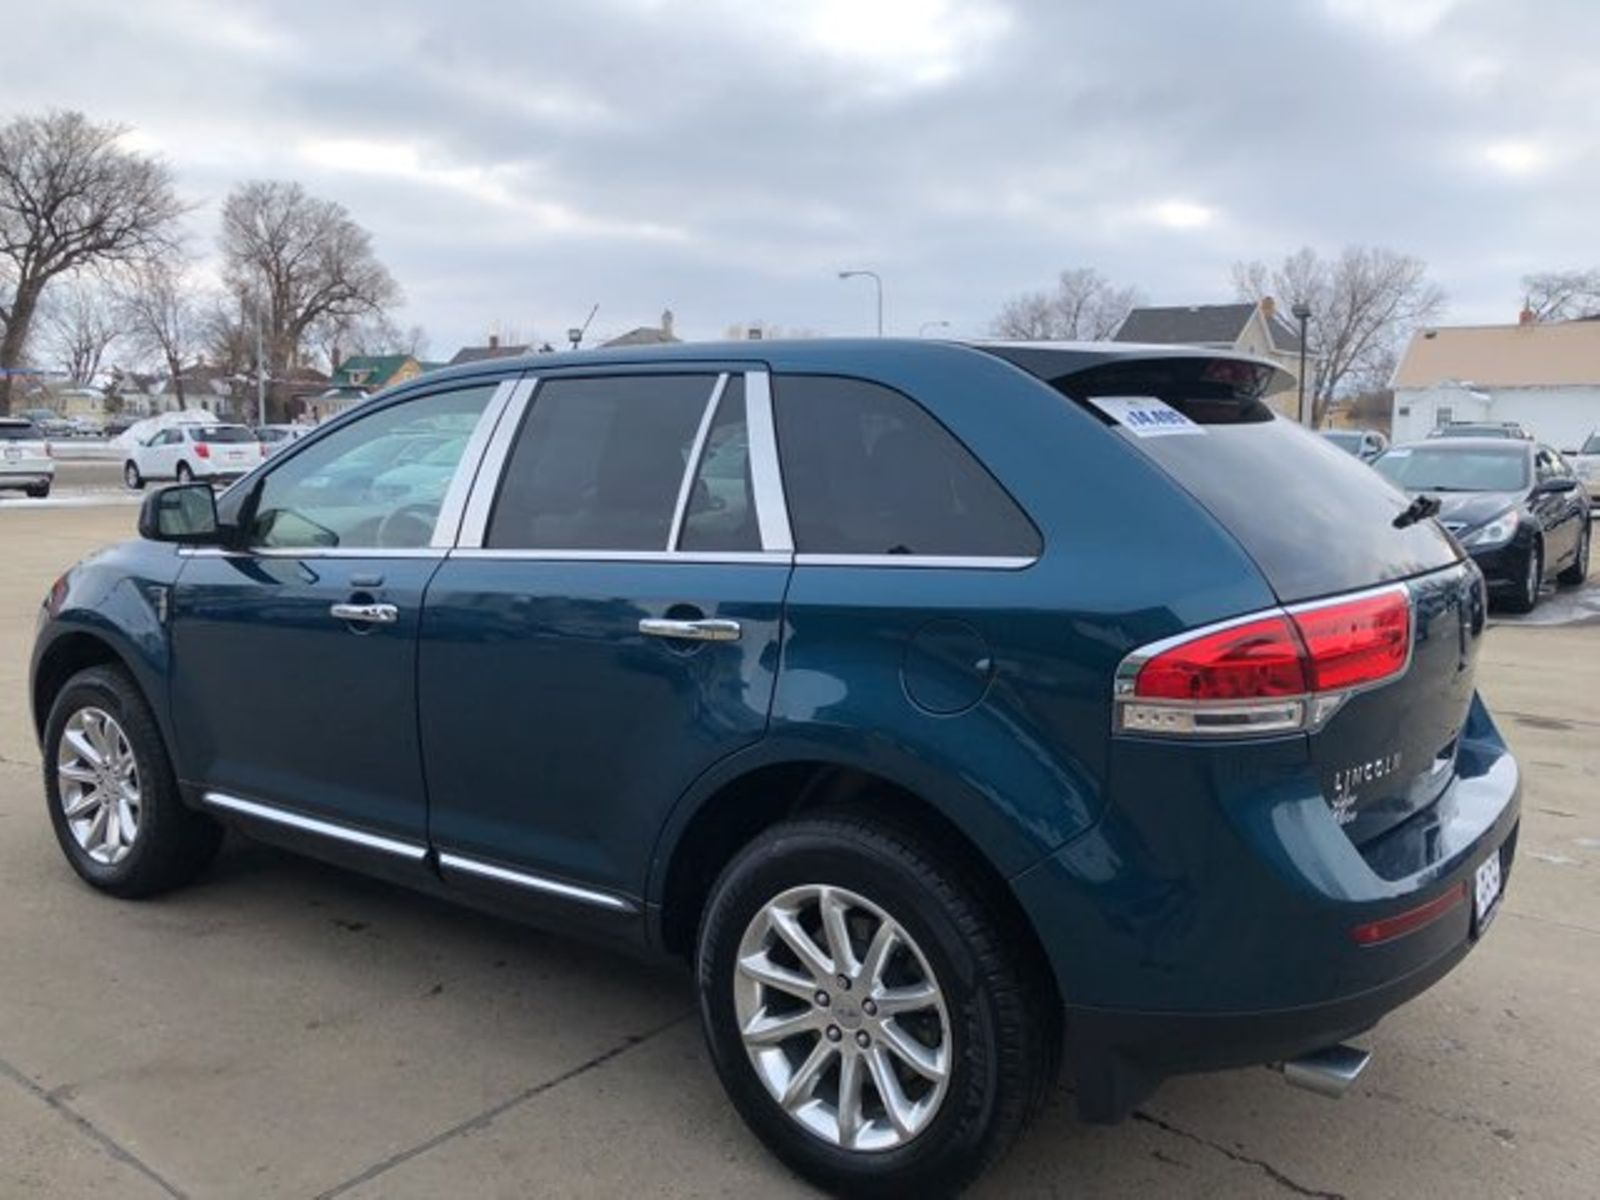 drummondville lincoln mkx sale at used amazing hyundai for